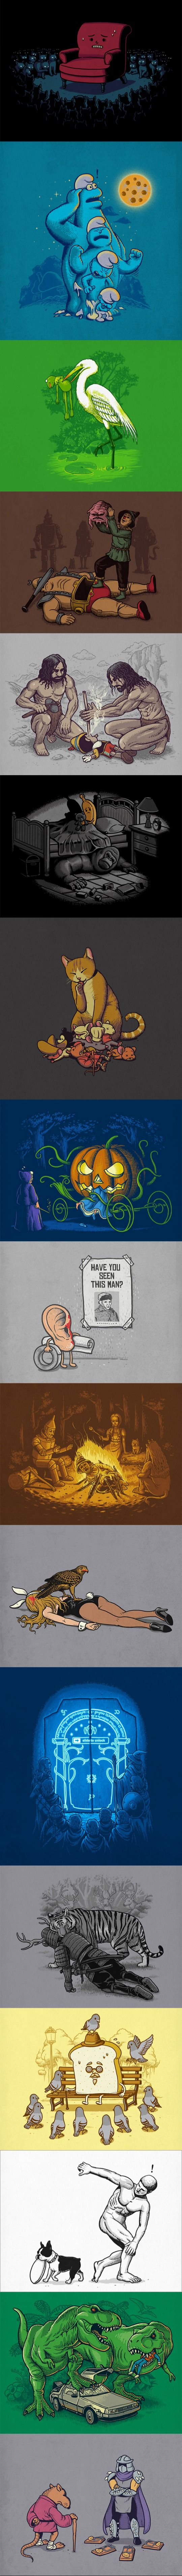 Cartoons by Ben Chen // Who said cute cartoons cannot be terrifying? Check these! #pics #cartoons #kindofhilarious